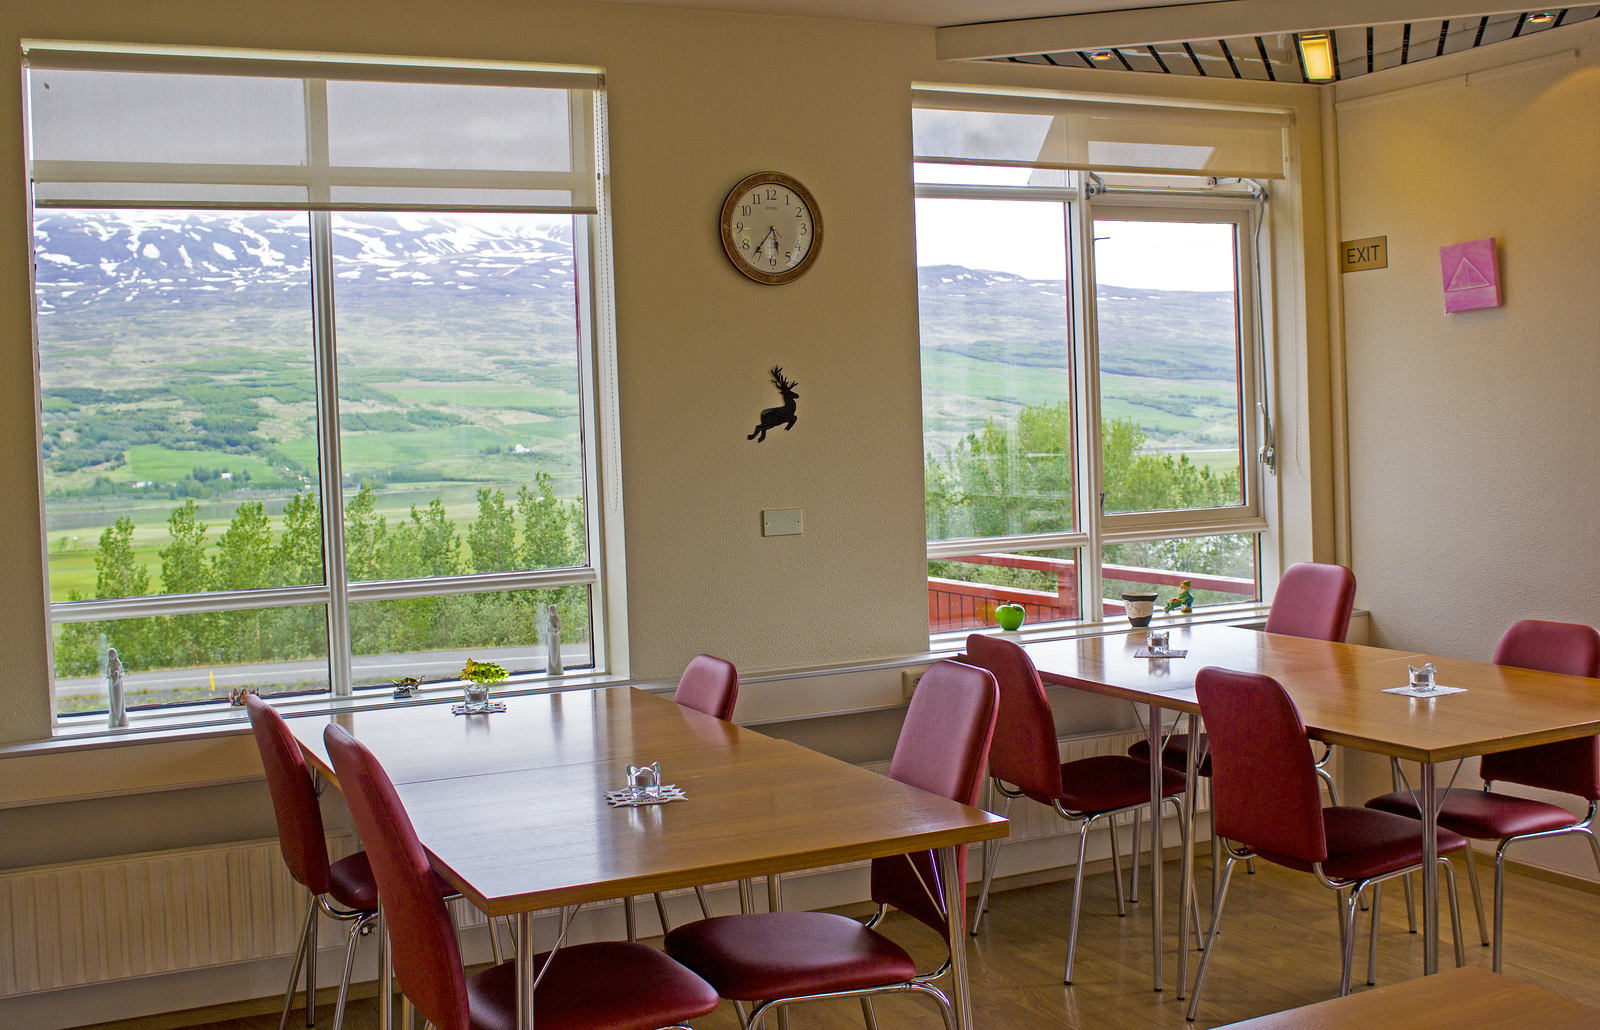 Silva - Vegan Restaurant in North Iceland